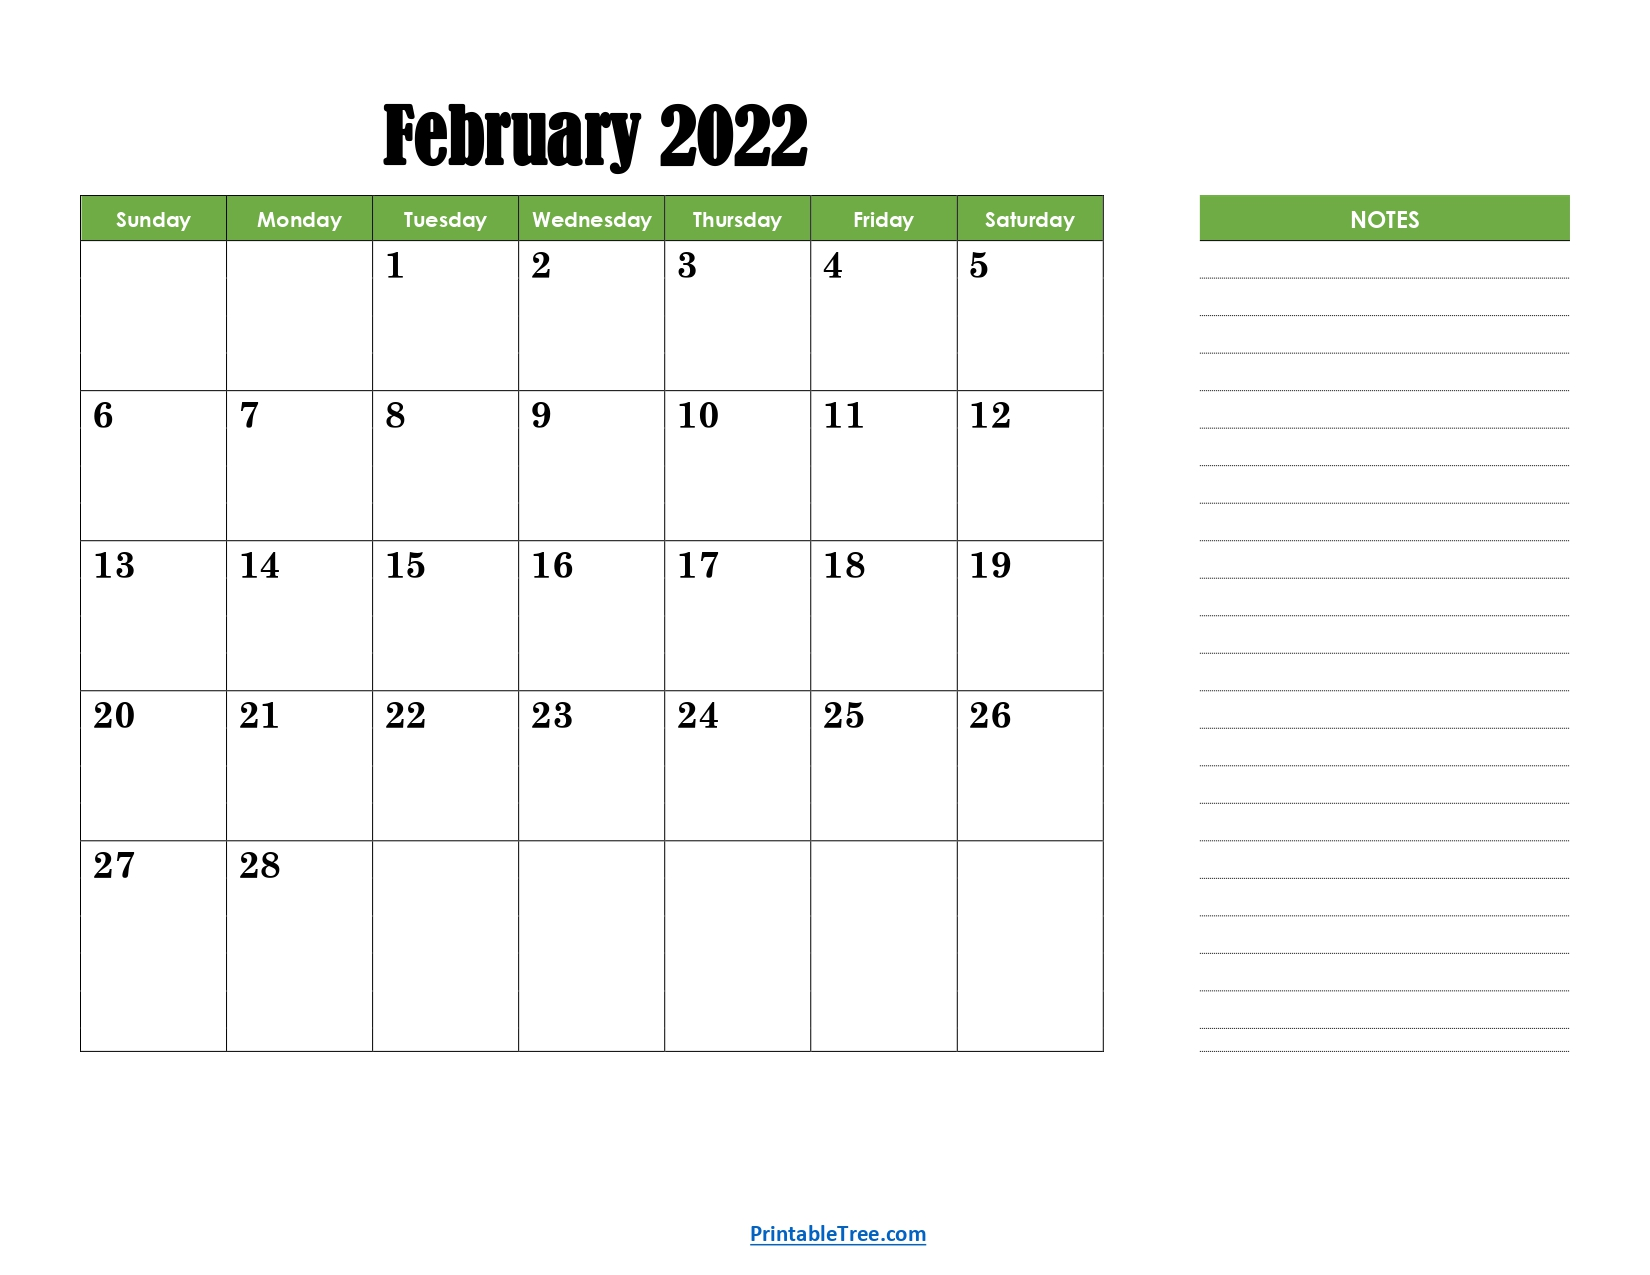 February 2022 Calendar with Green Notes